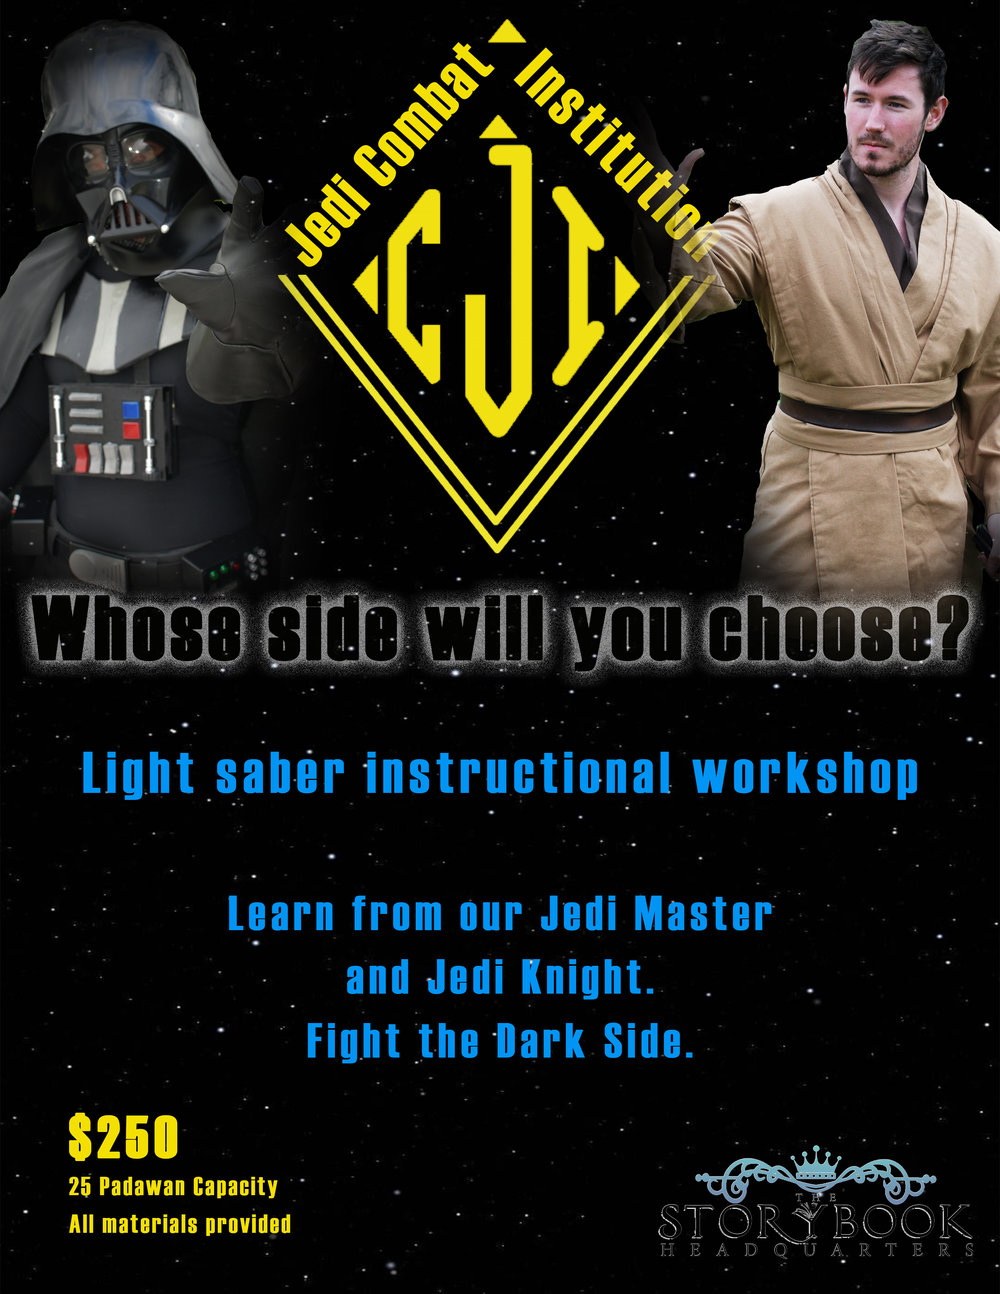 The Jedi Combat Institution and its Jedi Master invite all young Padawan to our light saber training course!  Whose side will you choose as you learn the ways of the force?  All Padawan will be faced by the dark side during this thrilling workshop.  This course has a 25 Padawan capactiy.  This workshop fills a one hour time slot.  If time permits, children will be invited to a meet and greet with the princesses with autographs and pictures.  **Prices may vary if booking for a private party.